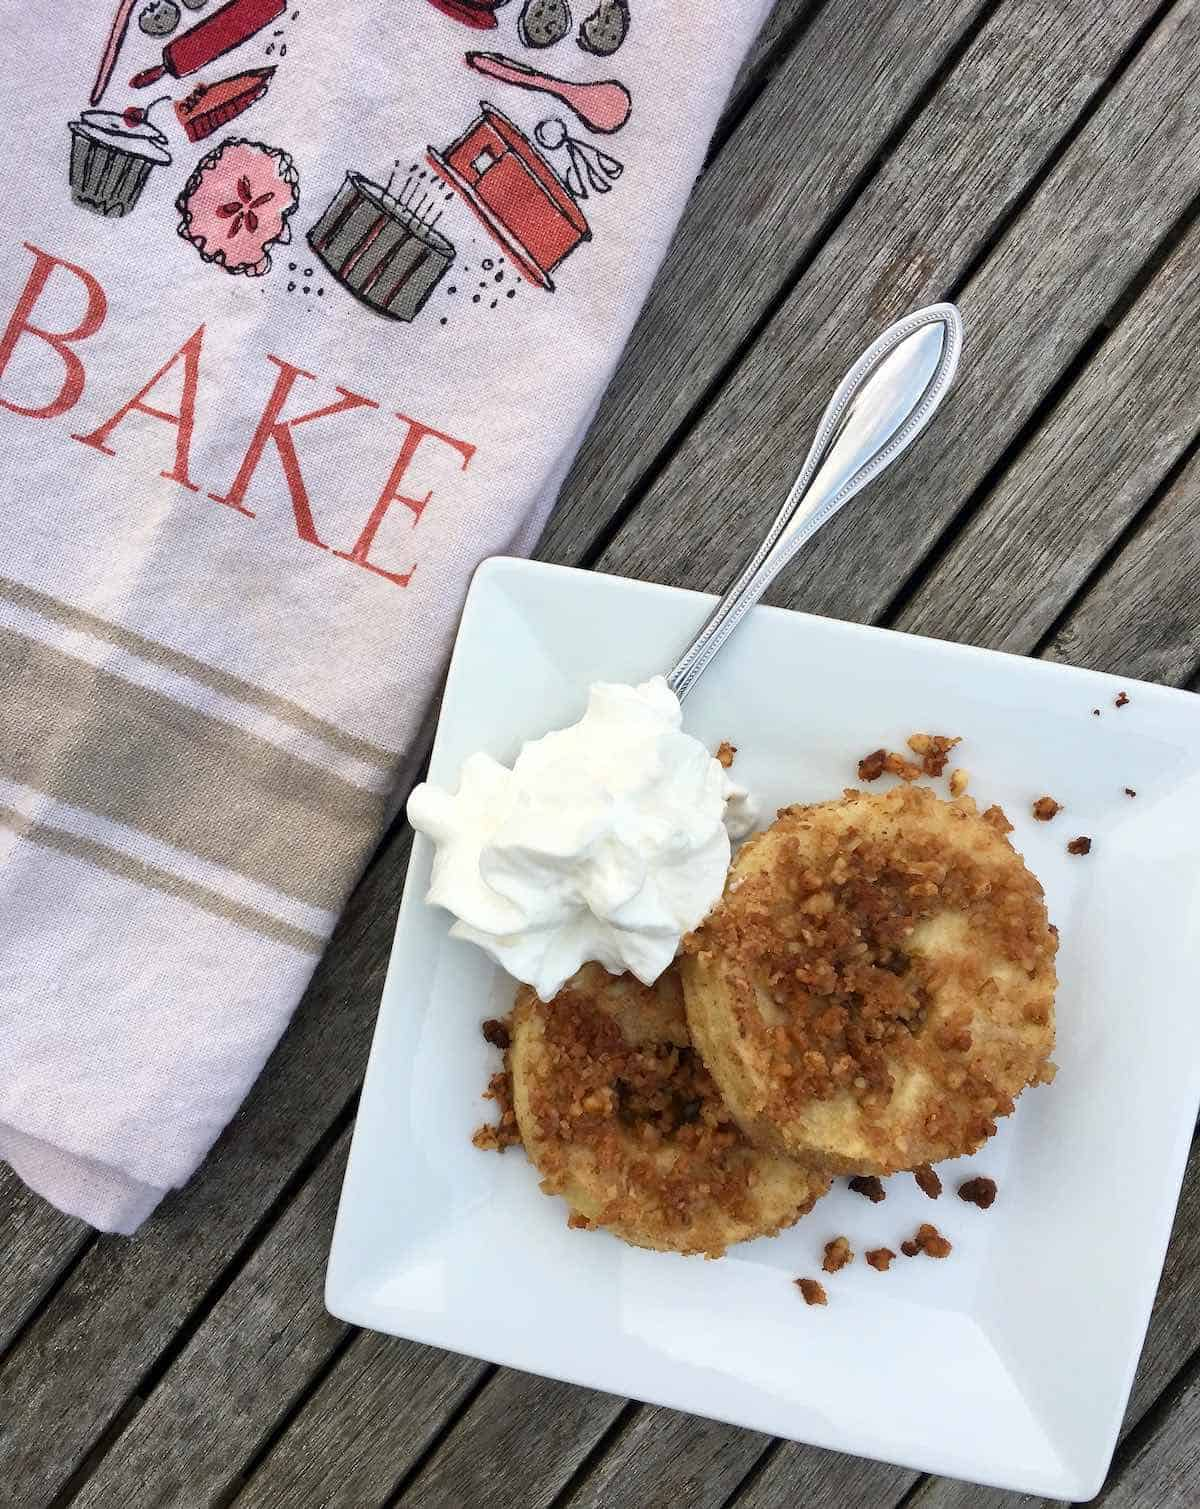 plated apple crisp slices with a tea towel that says BAKE